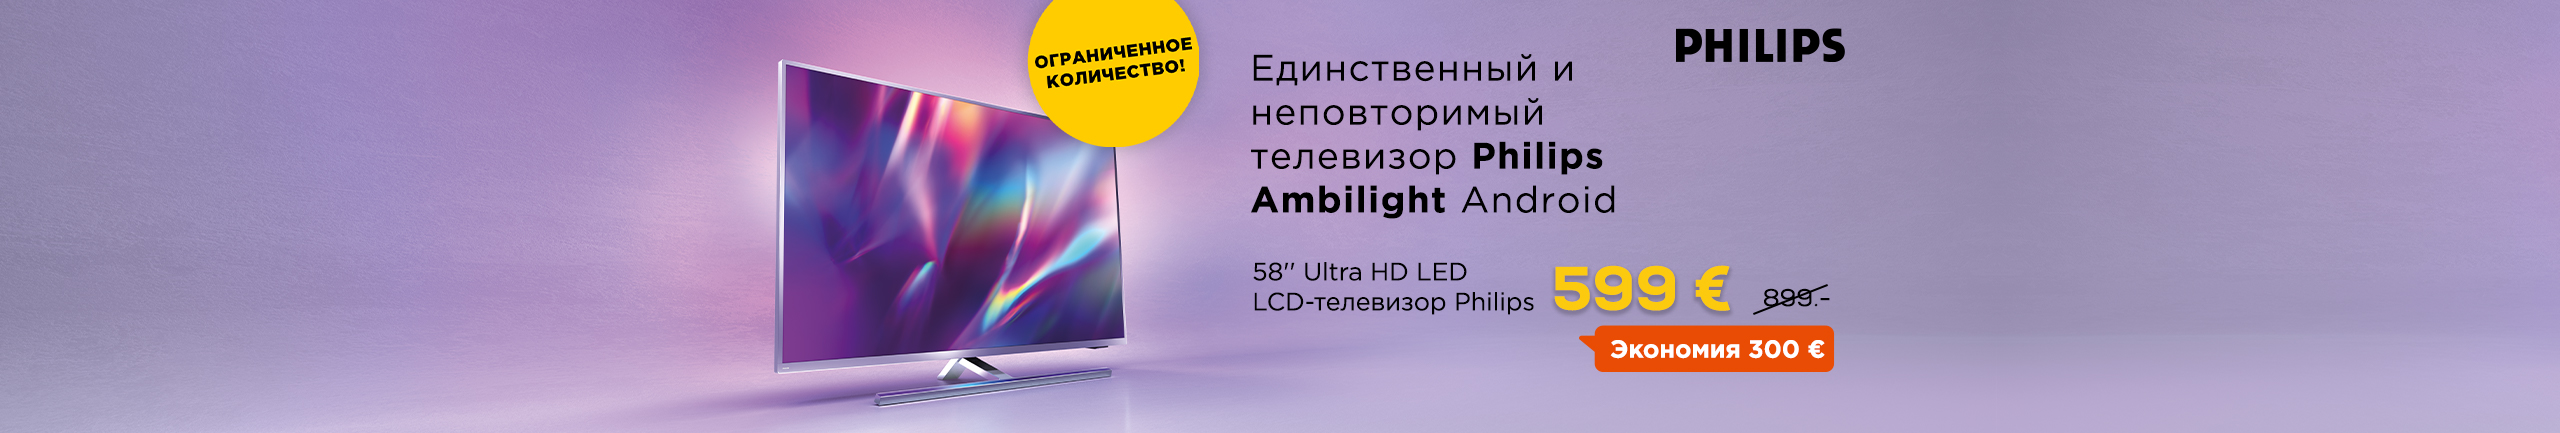 58'' Ultra HD LED LCD-телевизор Philips